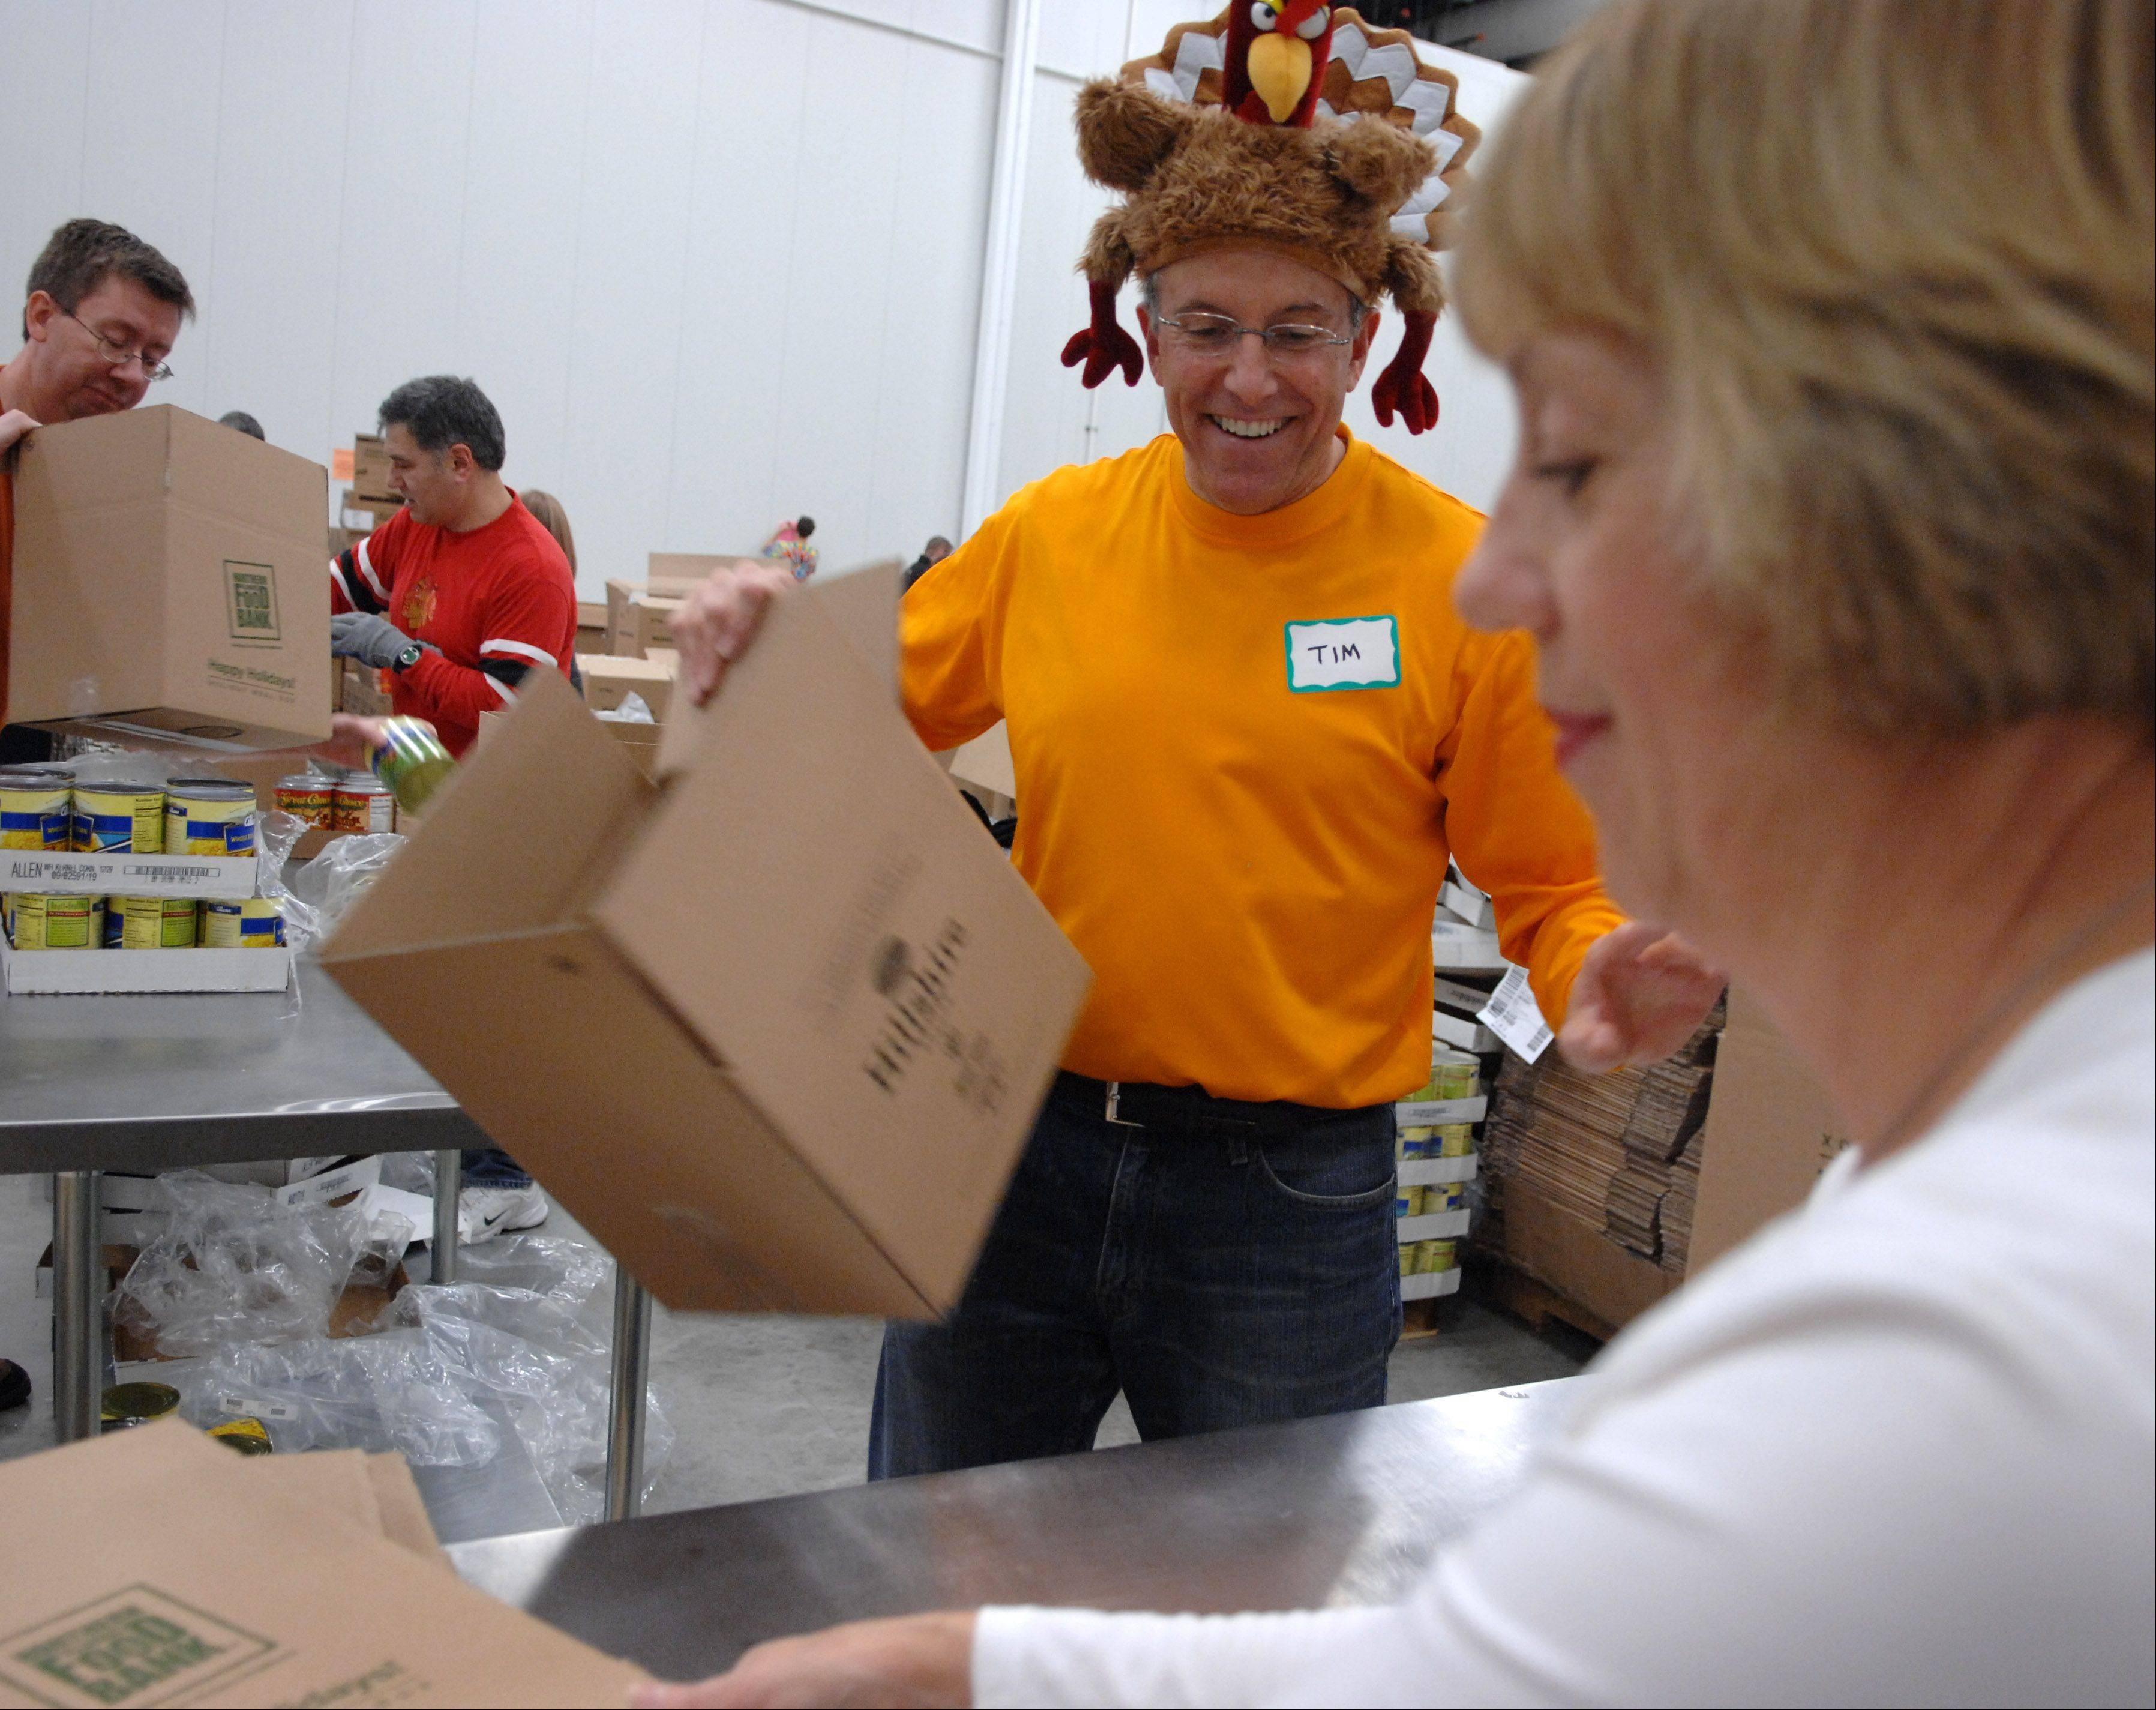 Tim and Donna O'Connor of Wheeling make boxes that are to be loaded with holiday meals as more than 100 employees from Jewel-Osco volunteer at the Northern Illinois Food Bank in Geneva Saturday. It�s the kickoff to a six-week program during which the food bank will pack more than 30,000 holiday meals for the less fortunate.